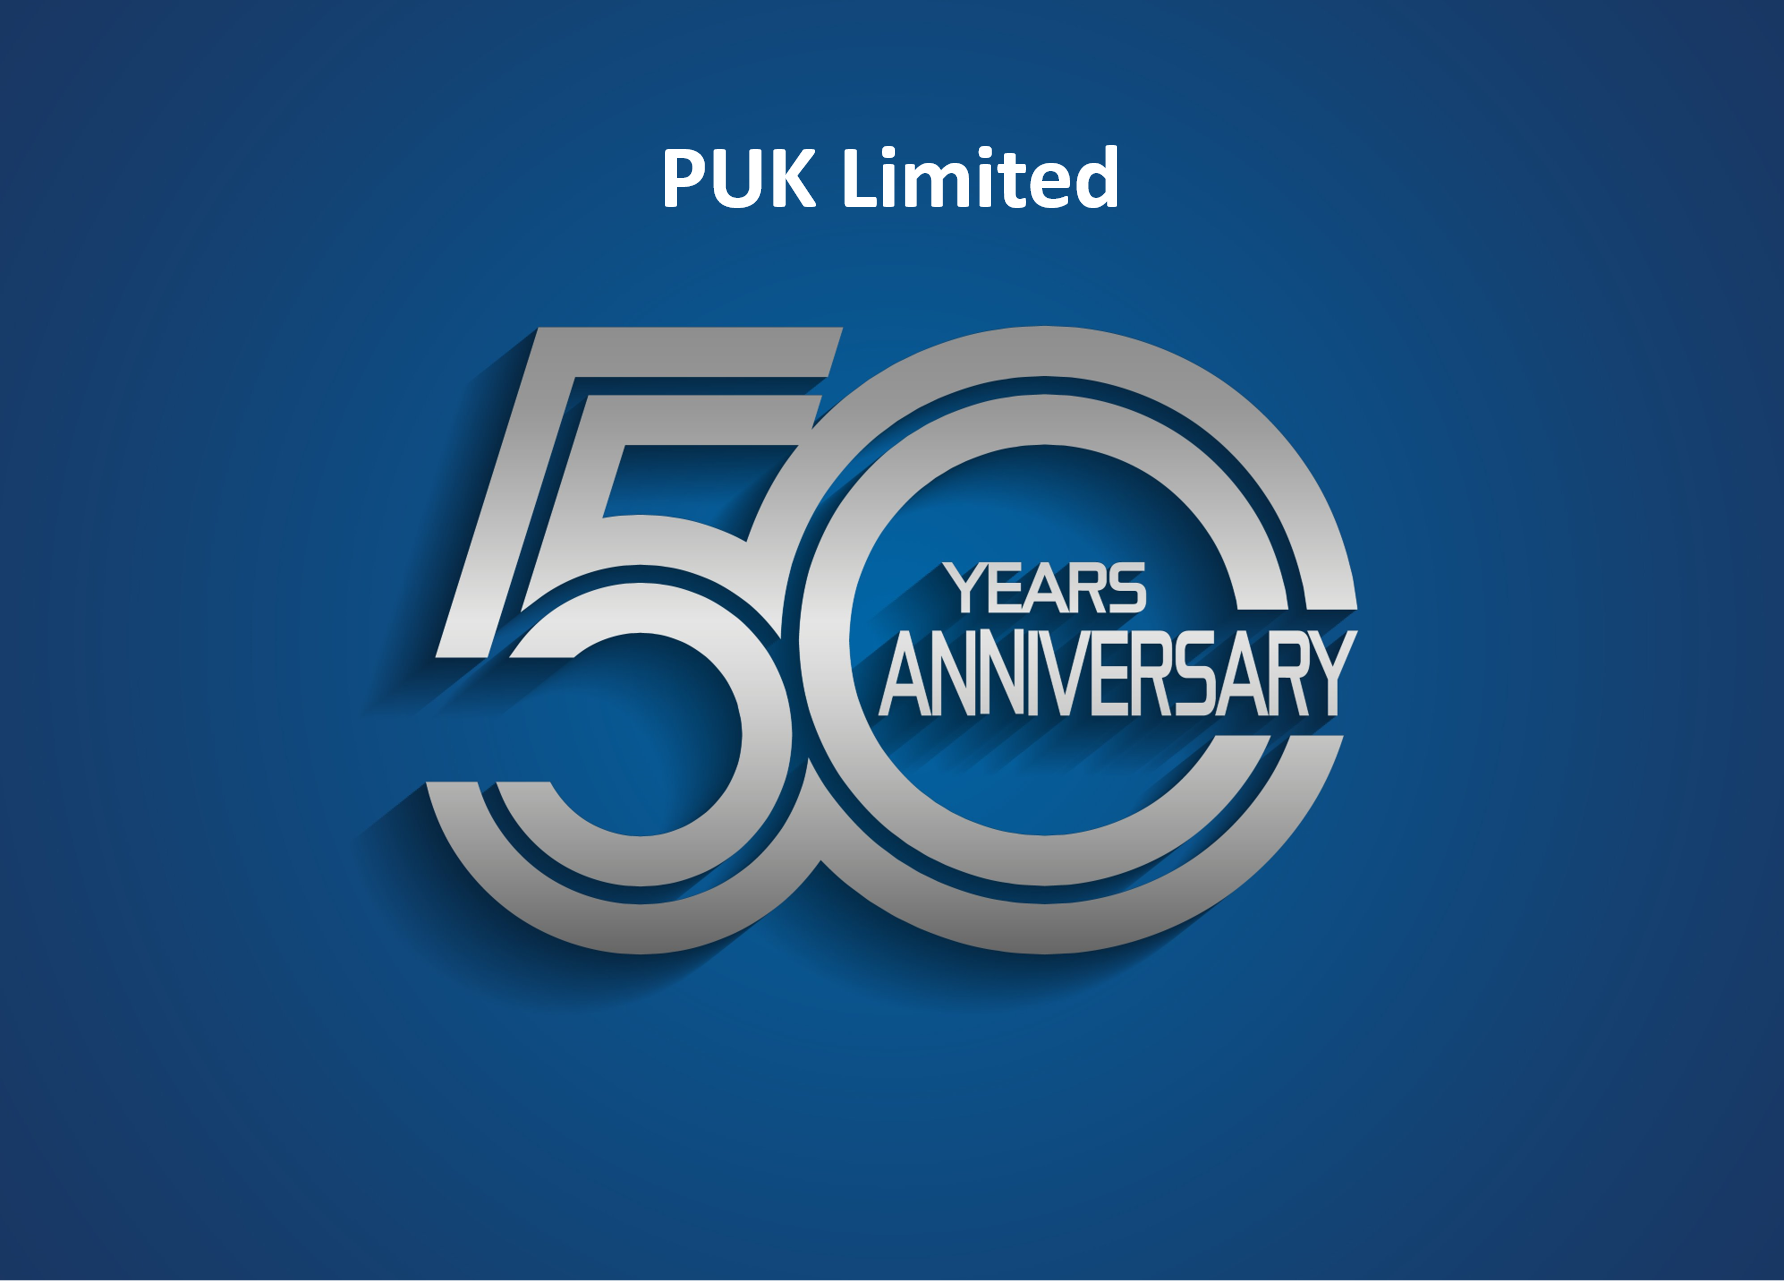 PUK 50 years in business